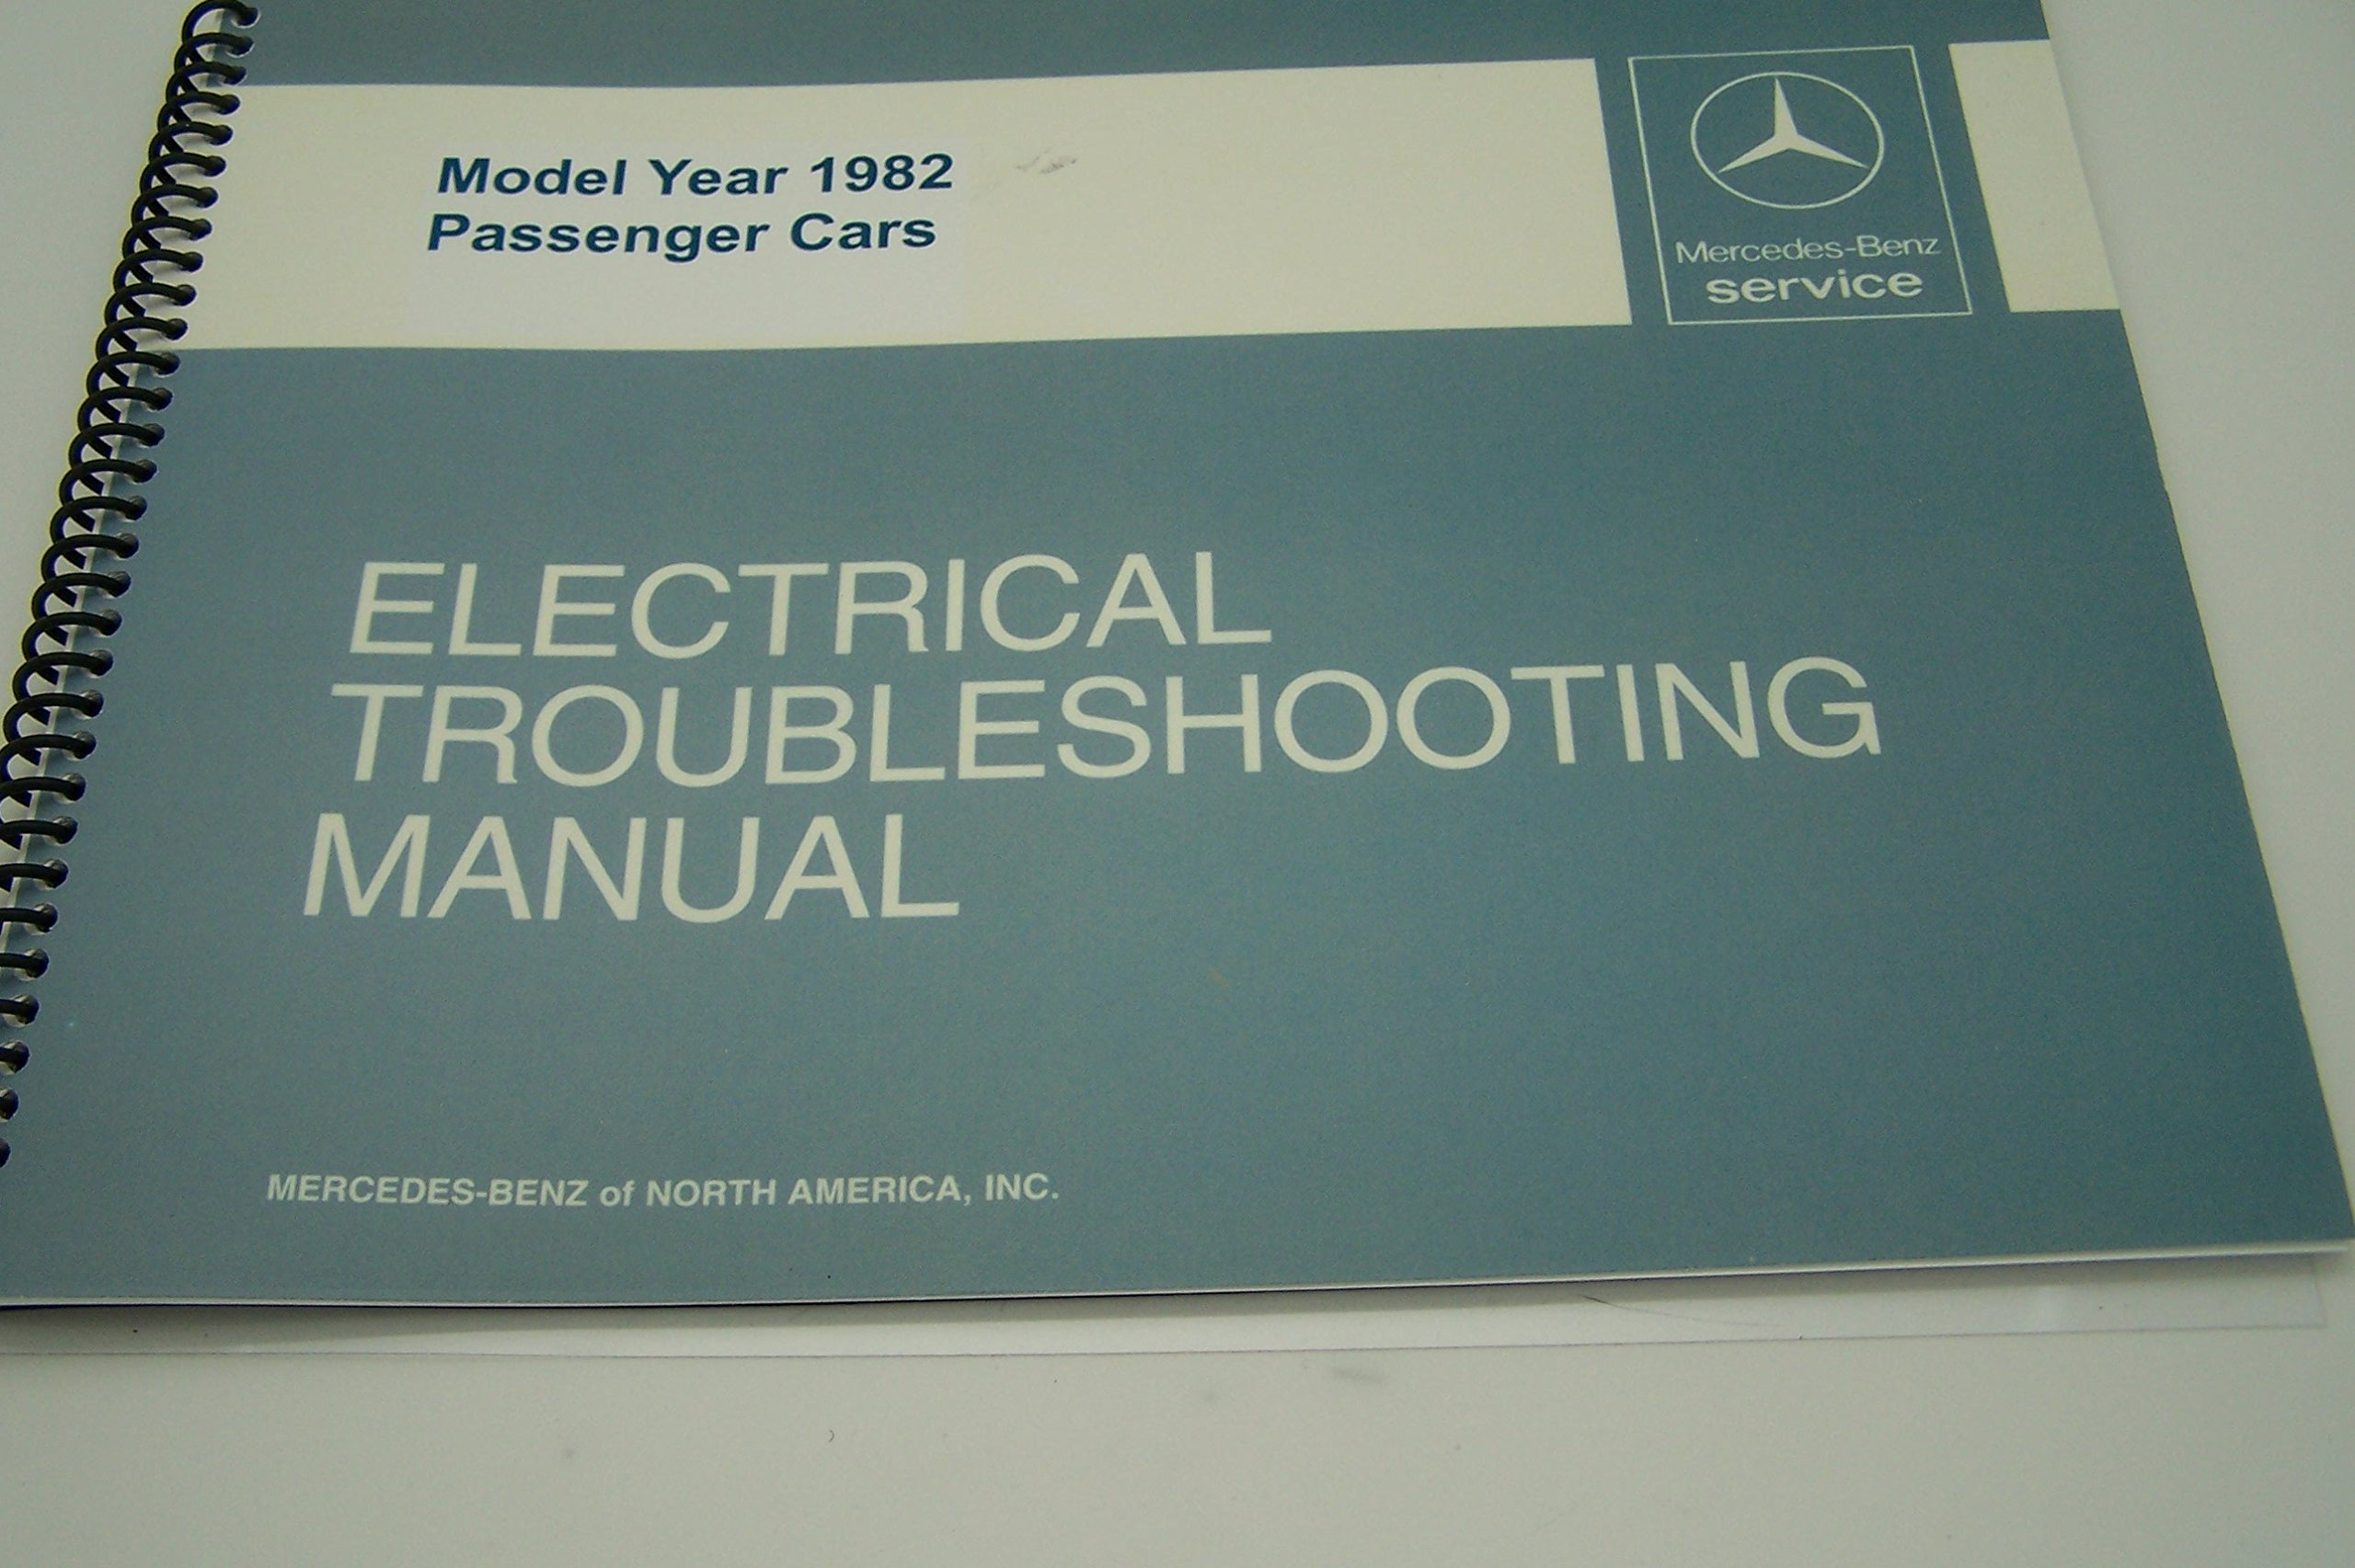 1982 Mercedes Electrical Service Manual 300d 300cd 300td turbo W123: 0617215835749: Amazon.com: Books